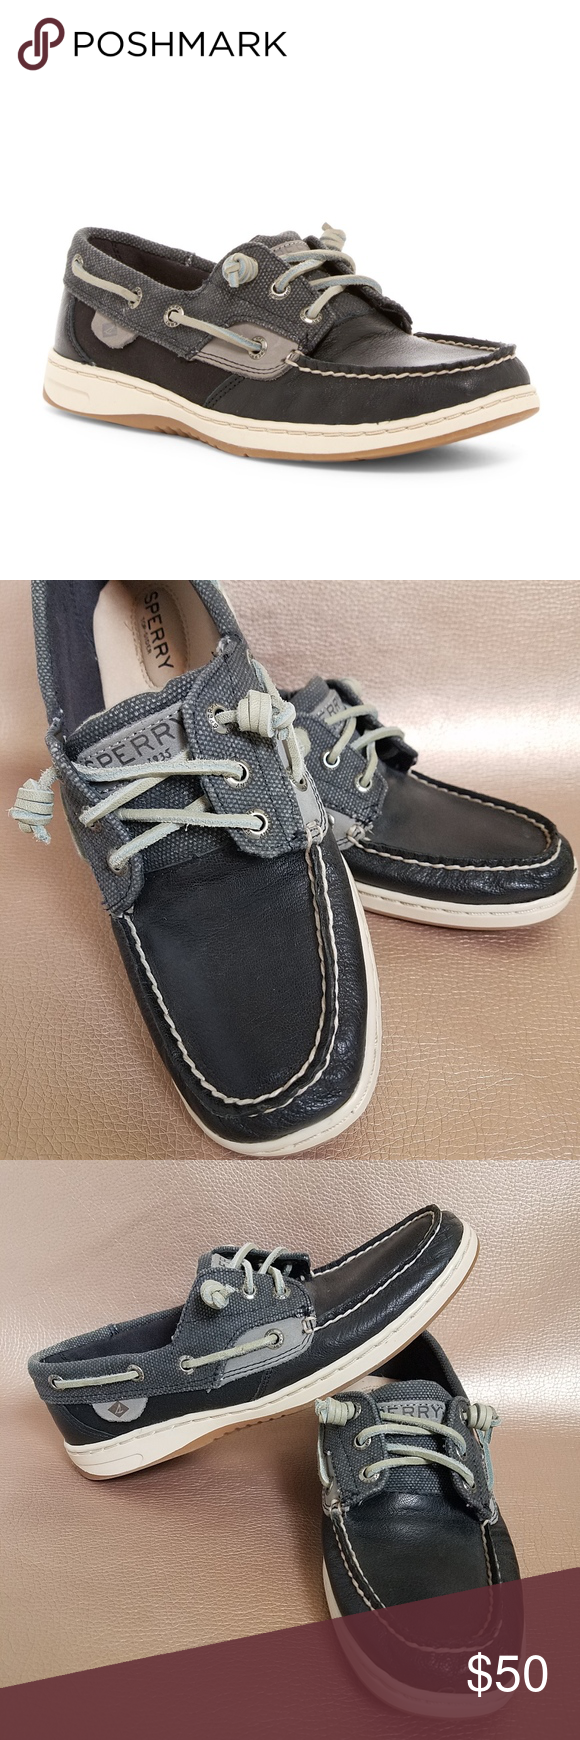 e7605b2e65ae9 NEW Sperry Top-Sider Ivyfish Waxed Boat Shoe NEW Sperry Top-Sider ...